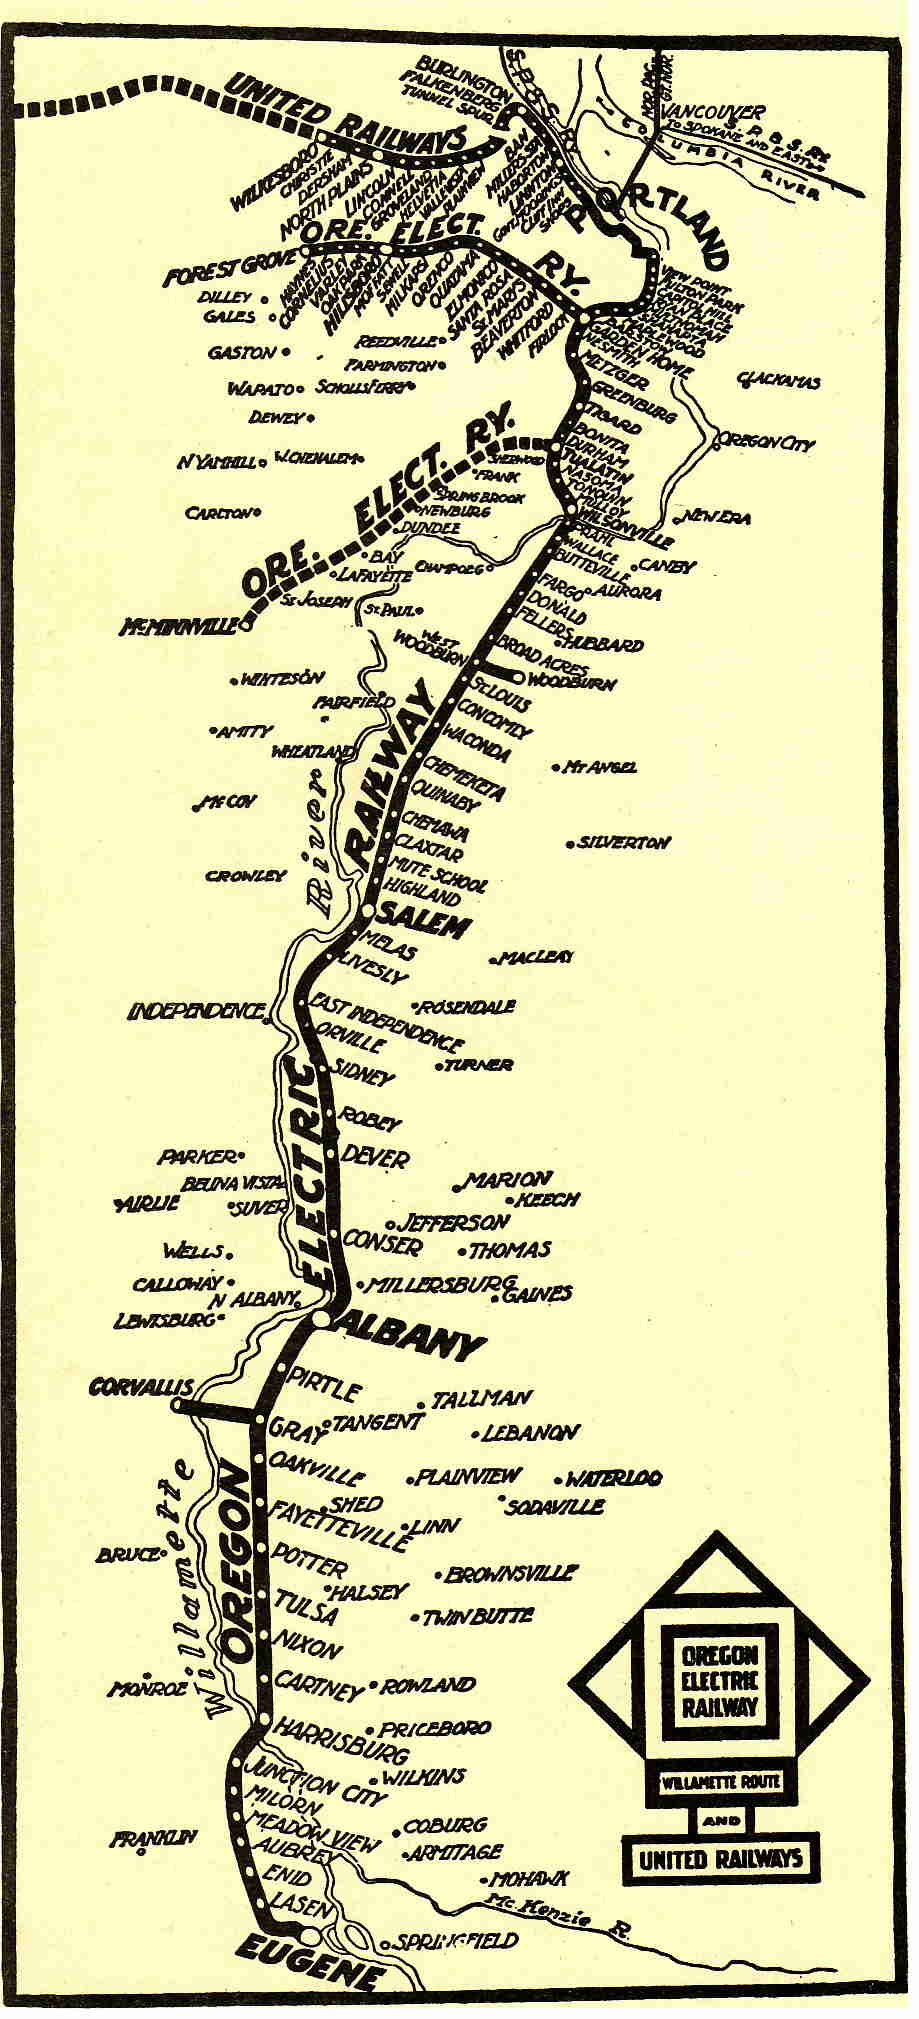 Oregon Electric Railway Route Map, 1914.